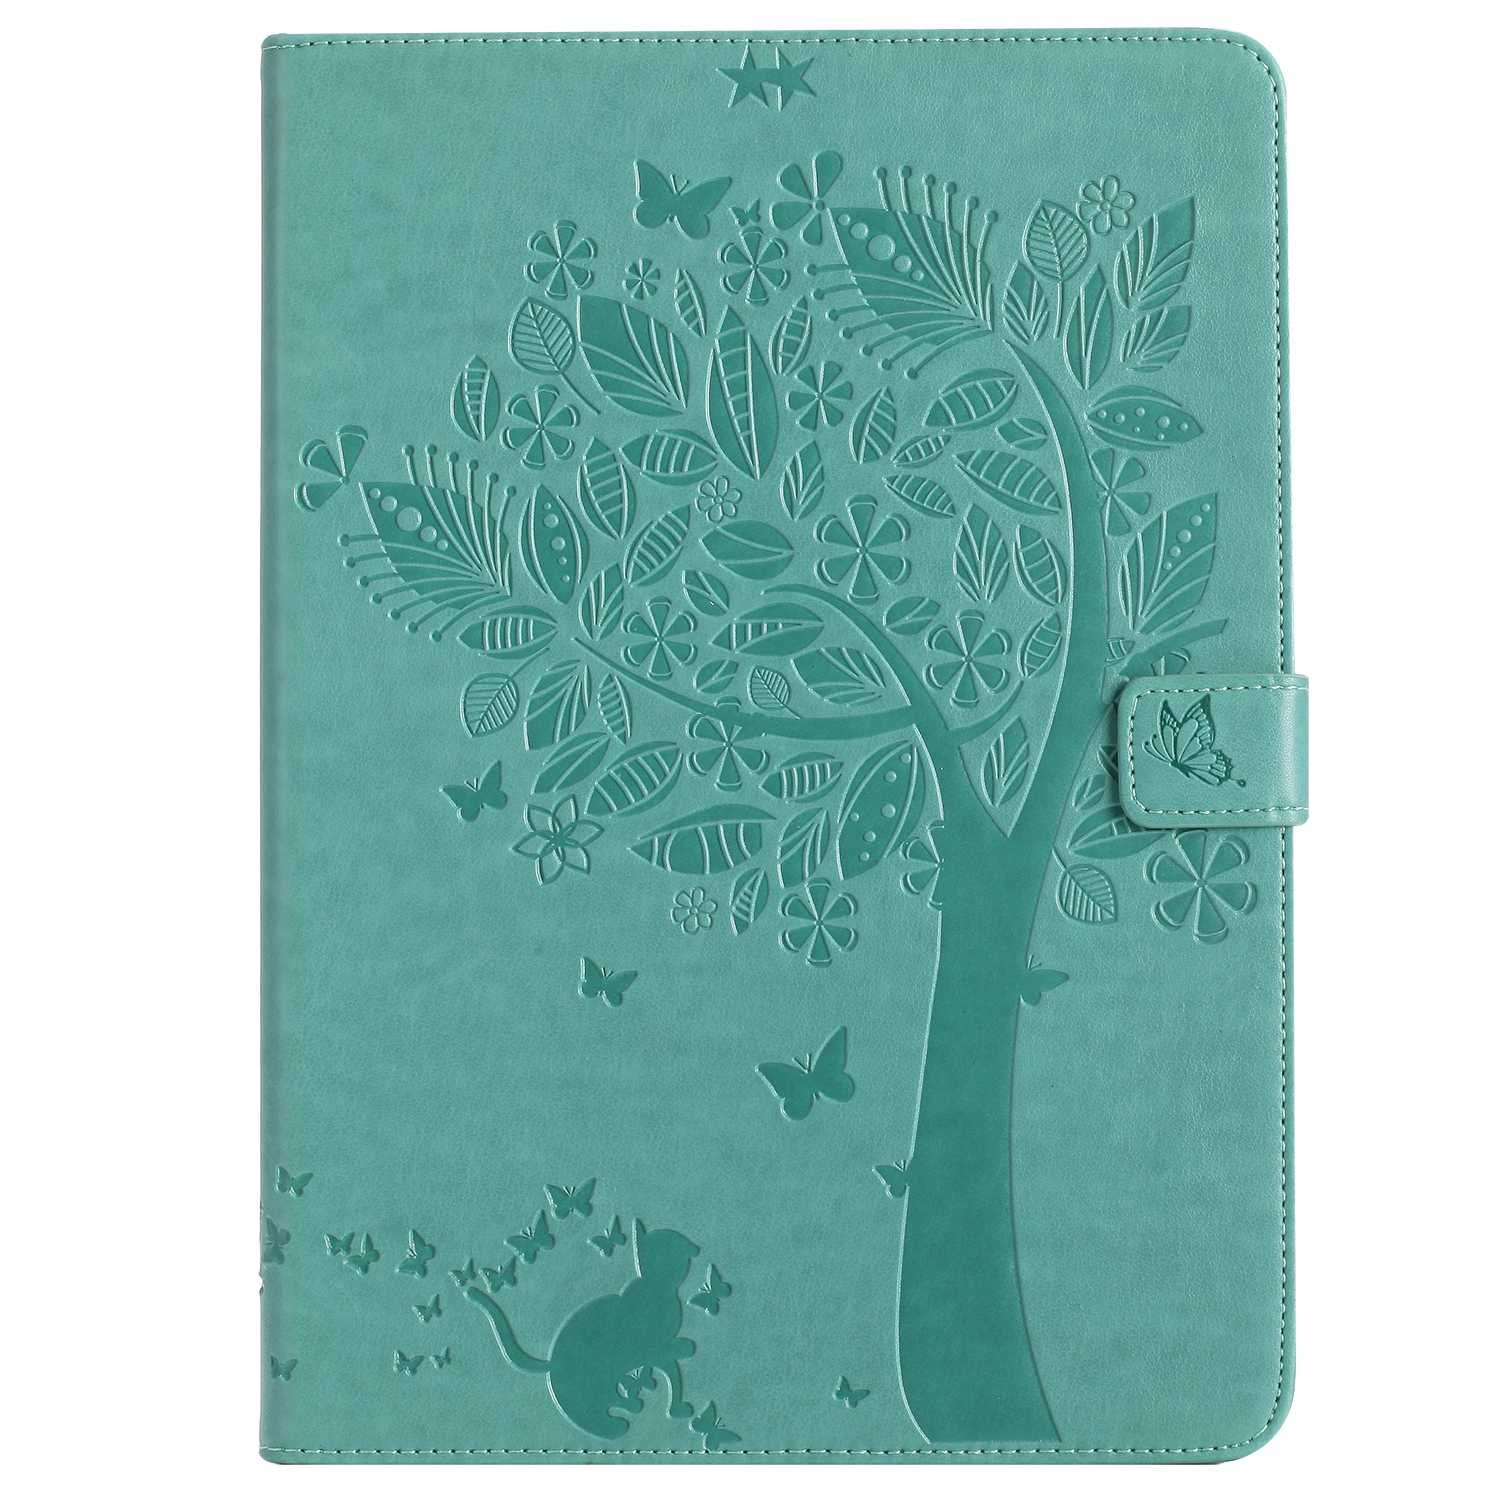 Bear Village iPad Pro 9.7 Inch Case, Leather Magnetic Case, Fullbody Protective Cover with Stand Function for Apple iPad Pro 9.7 Inch, Green by Bear Village